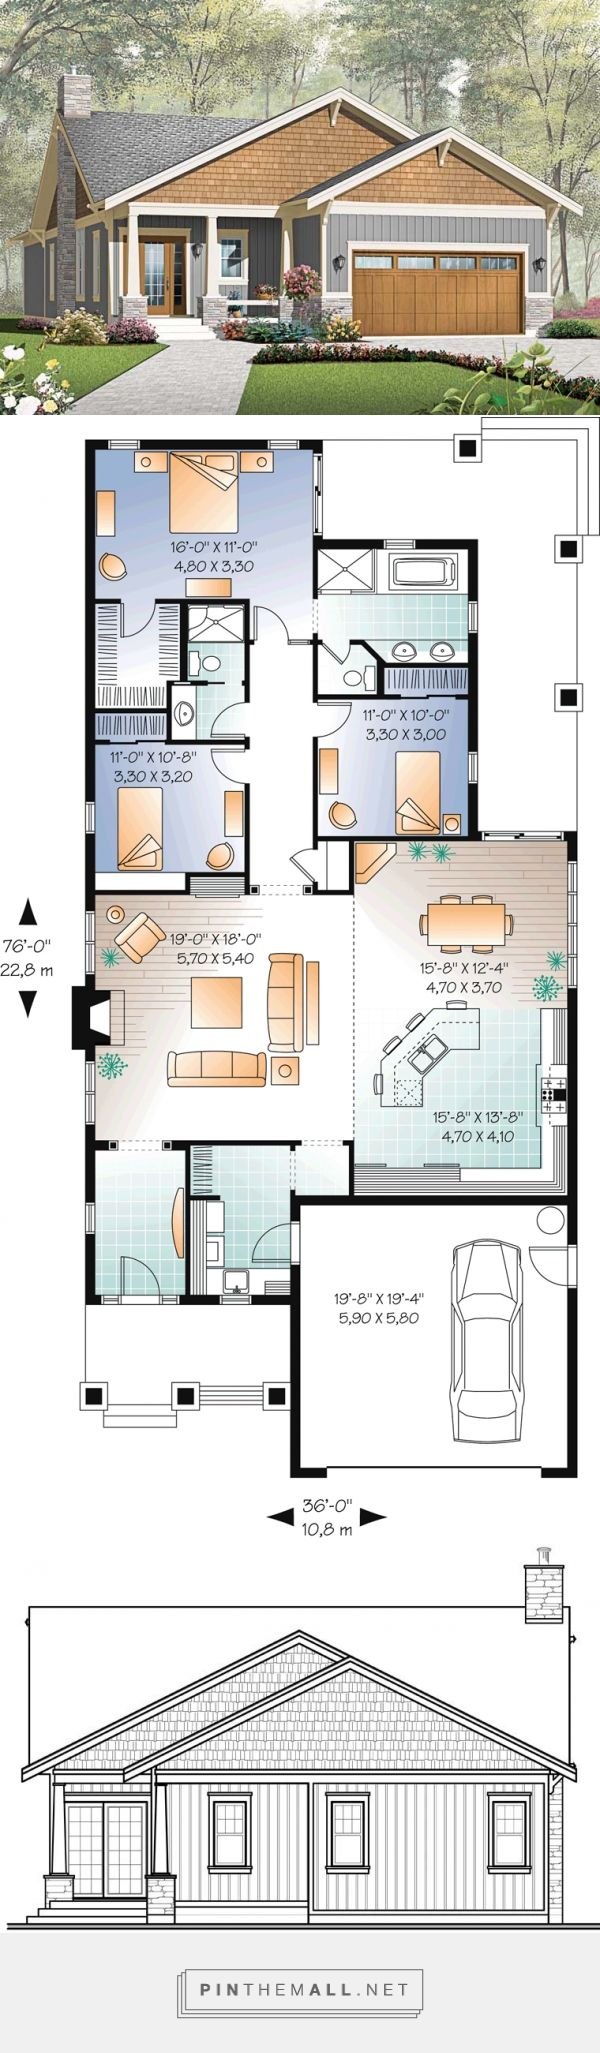 House plan at familyhomeplans created via